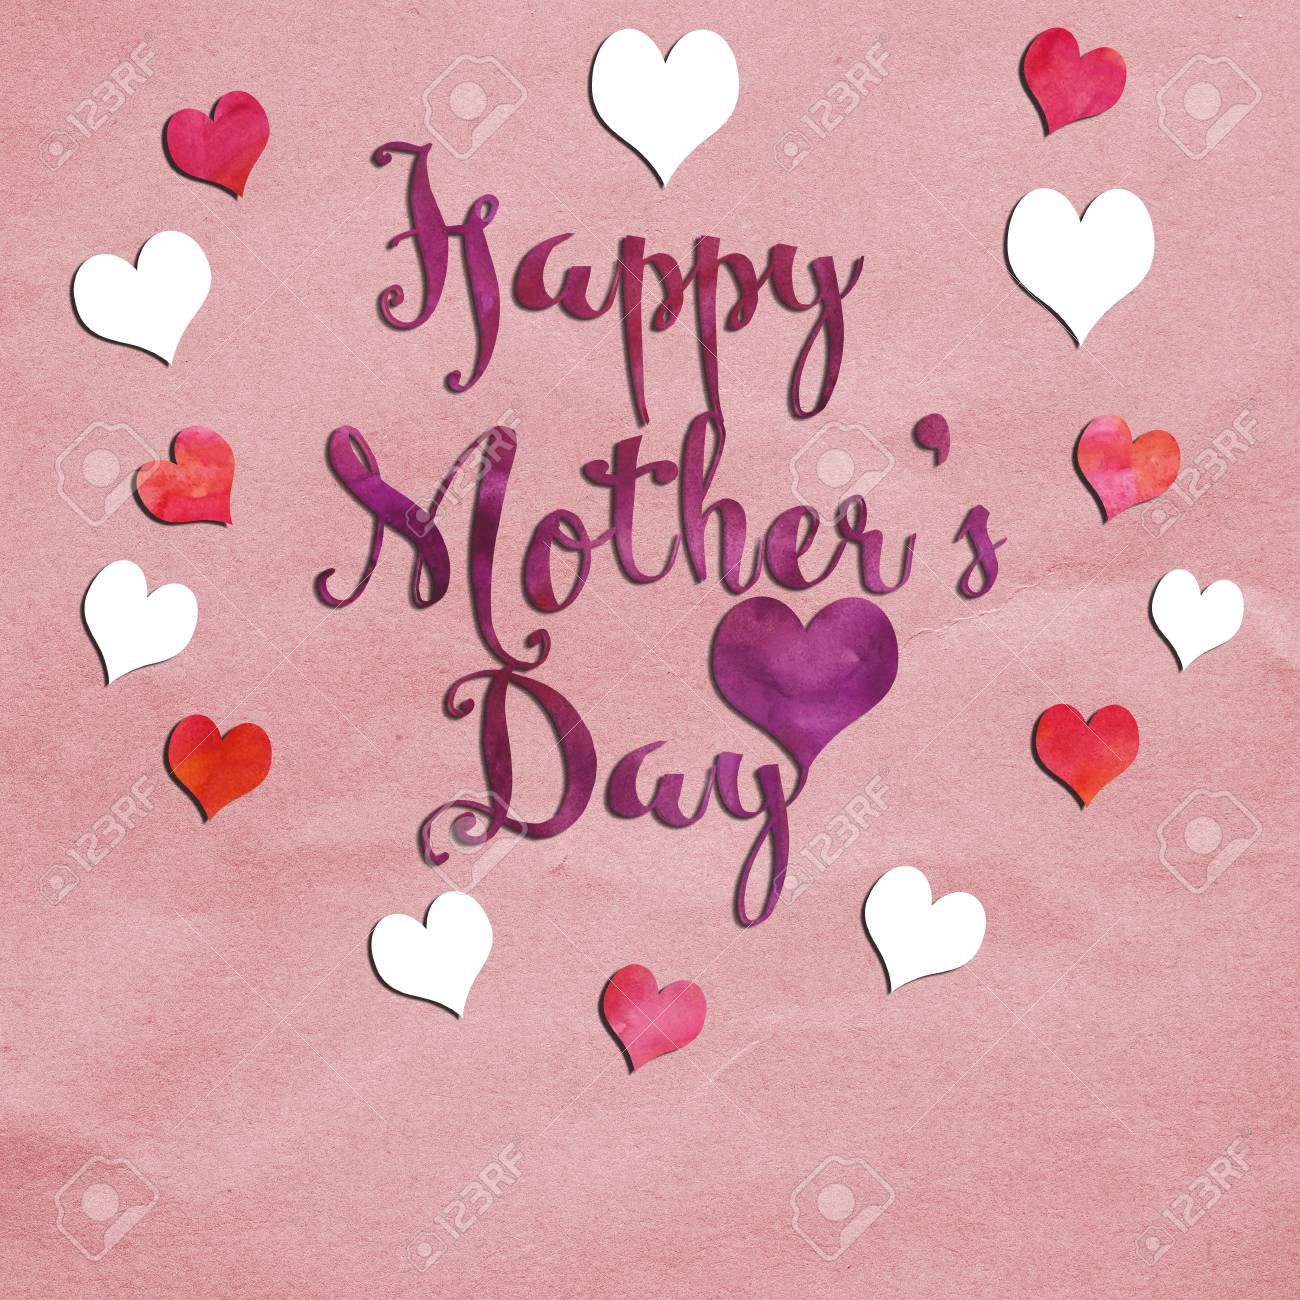 A Greeting Card With The Message Happy Mothers Day Stock Photo